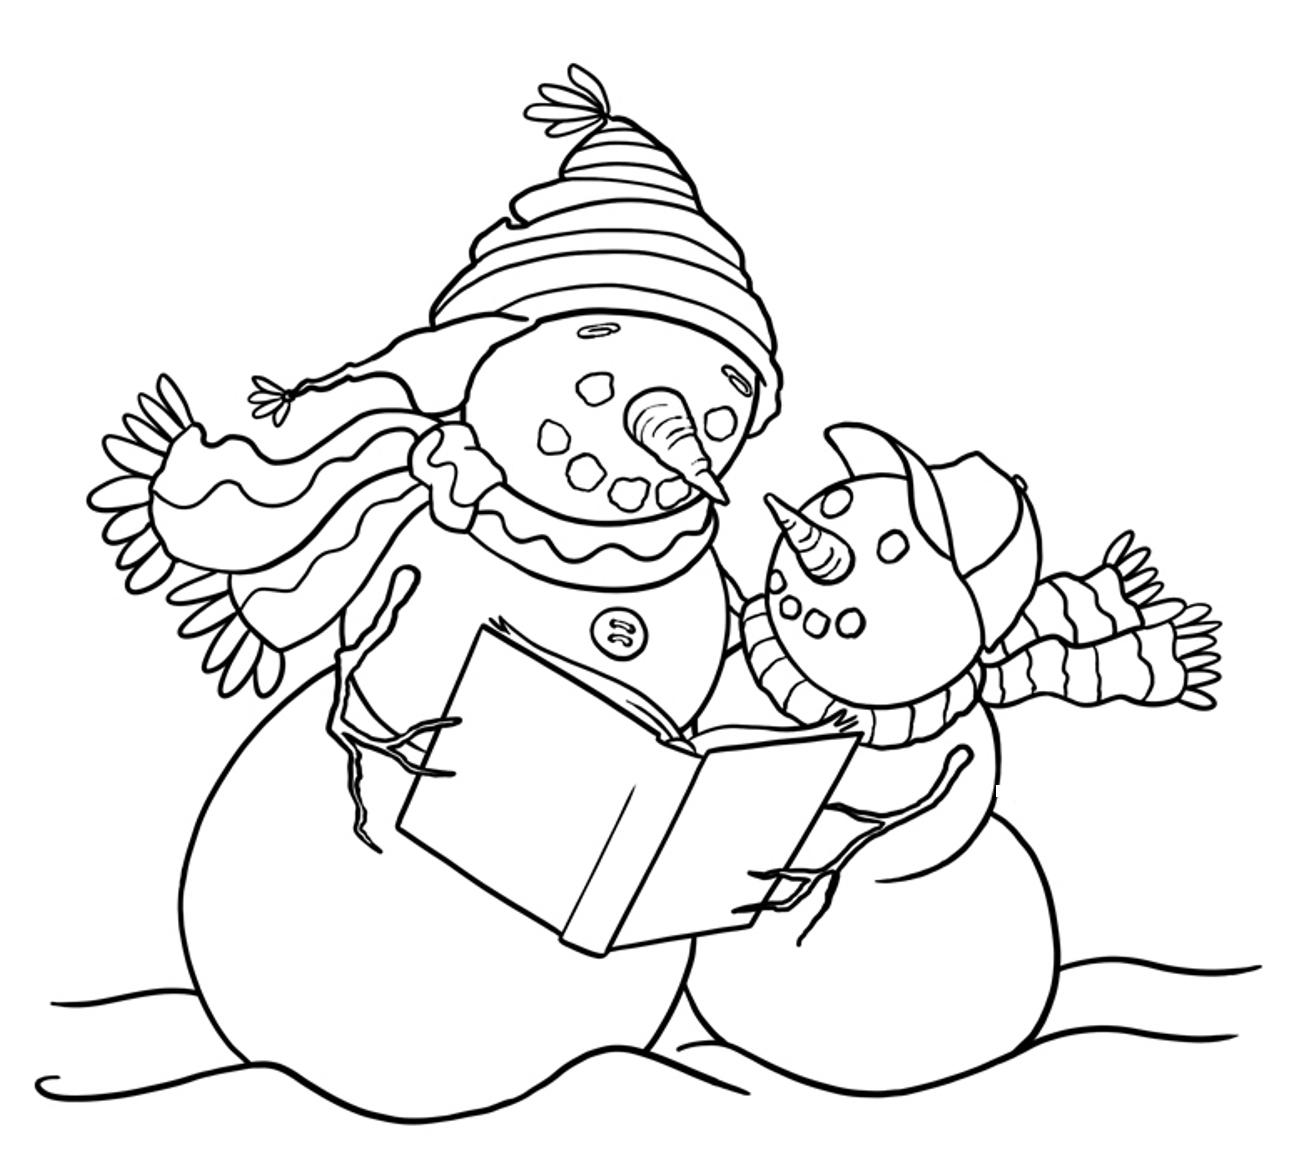 coloring pages and snowman - photo#27